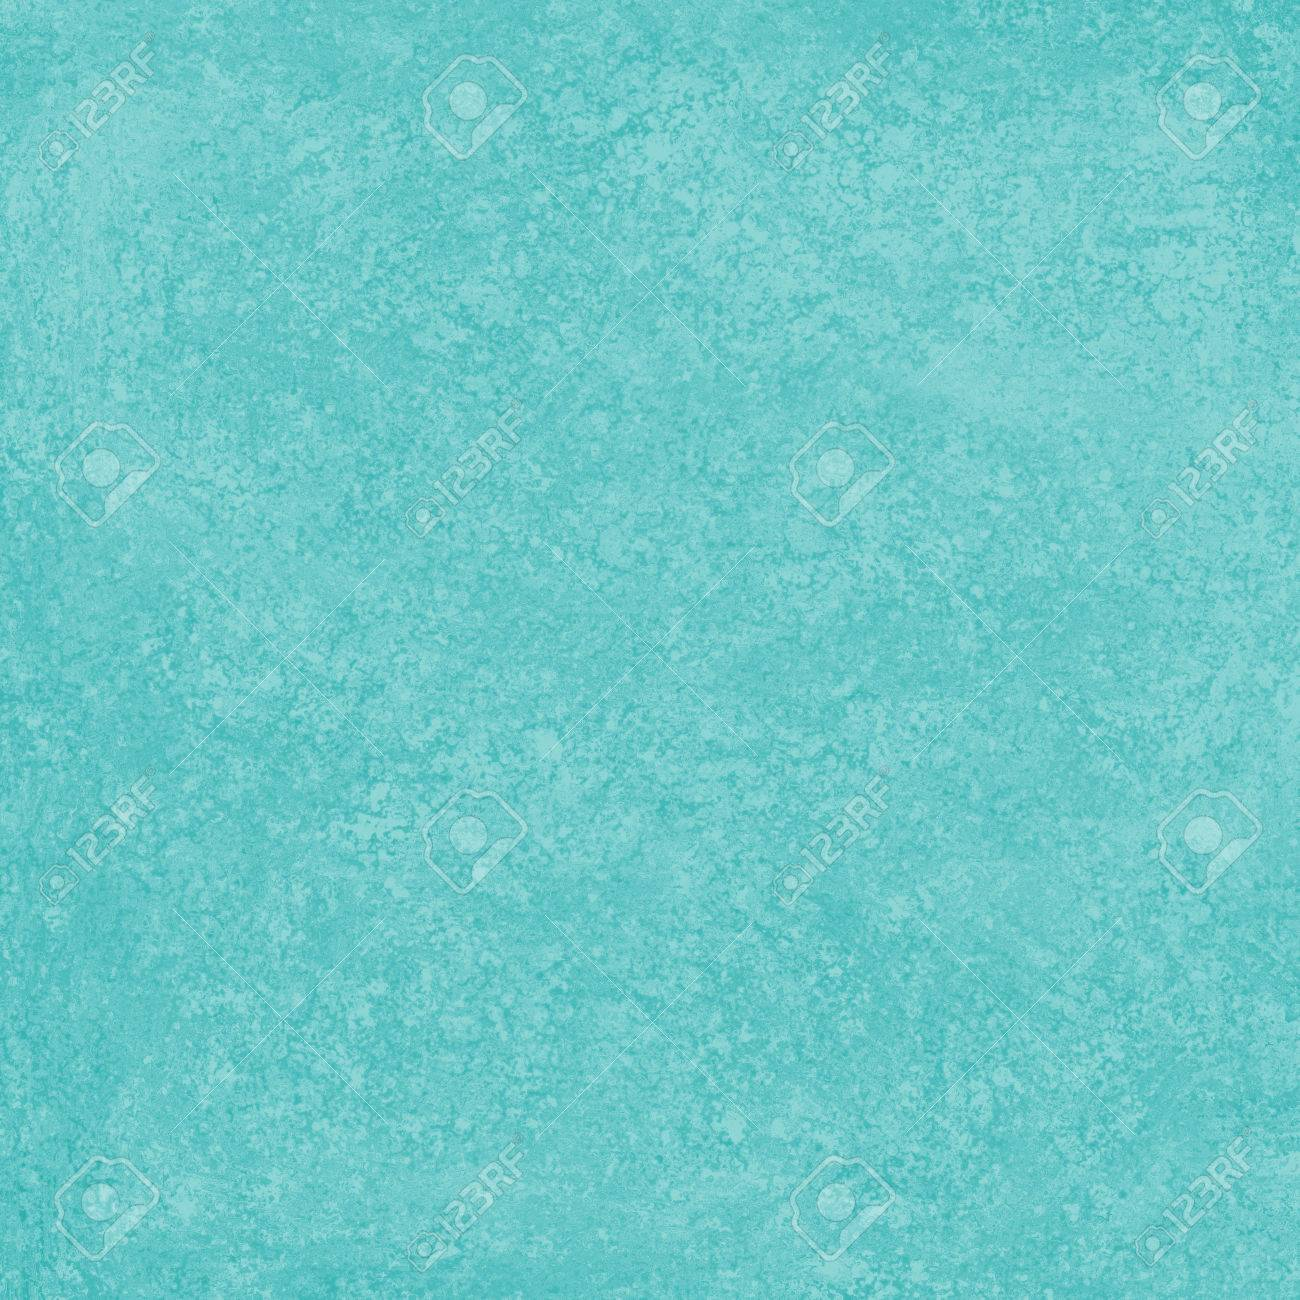 plain solid bright blue green background with rough distressed vintage grunge texture stock photo 72956663